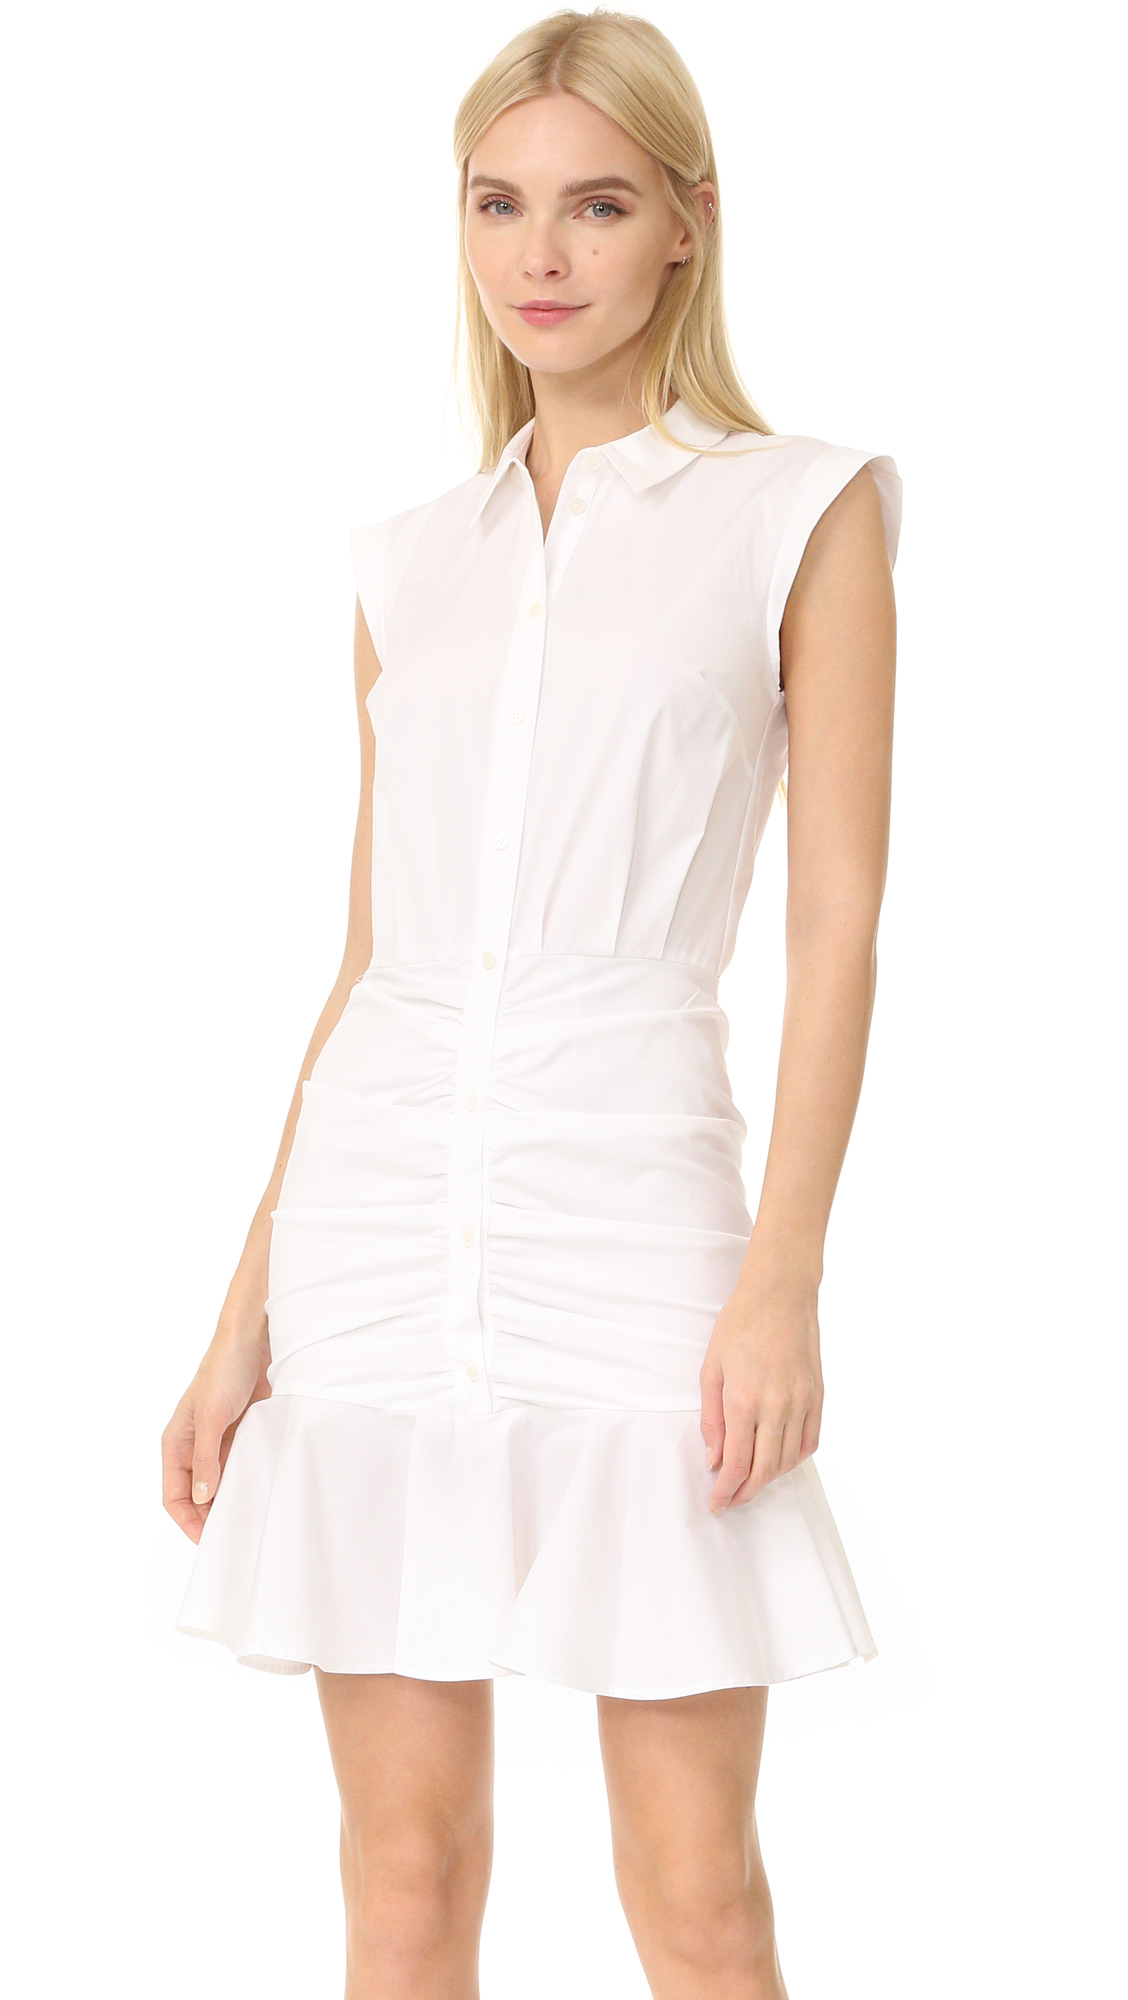 Veronica Beard Ruched Shirtdress - White